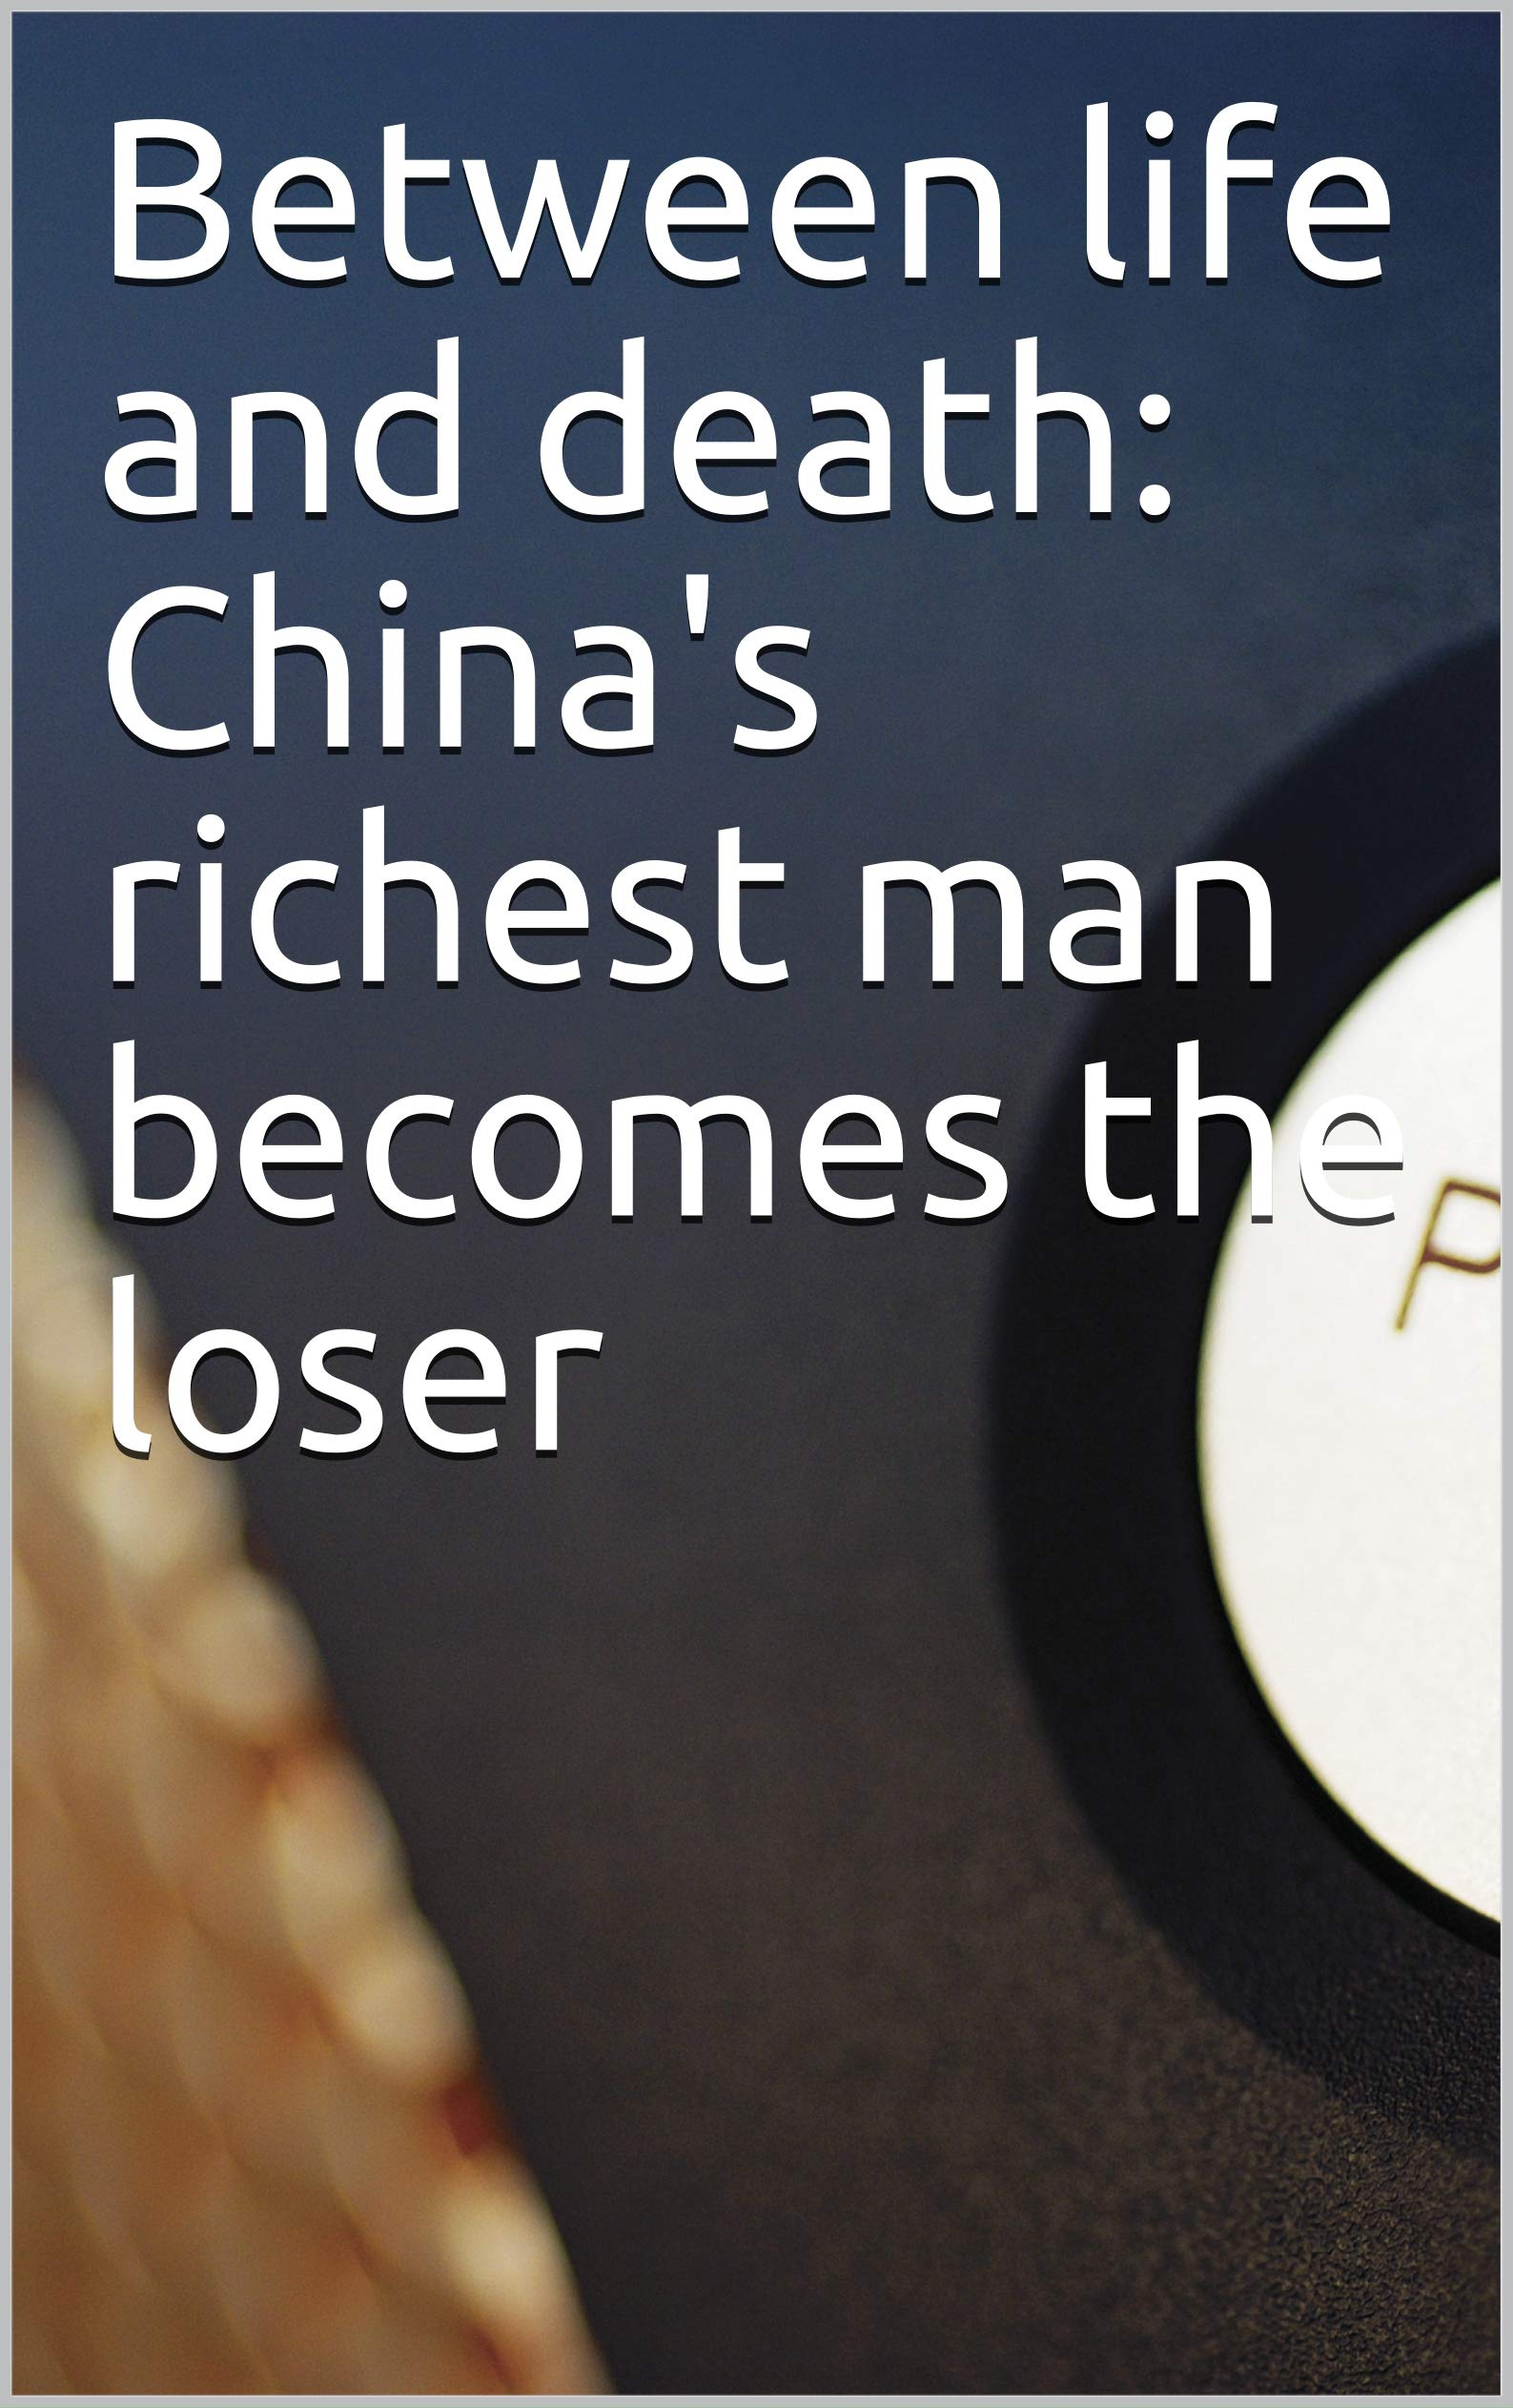 Between life and death: China's richest man becomes the loser